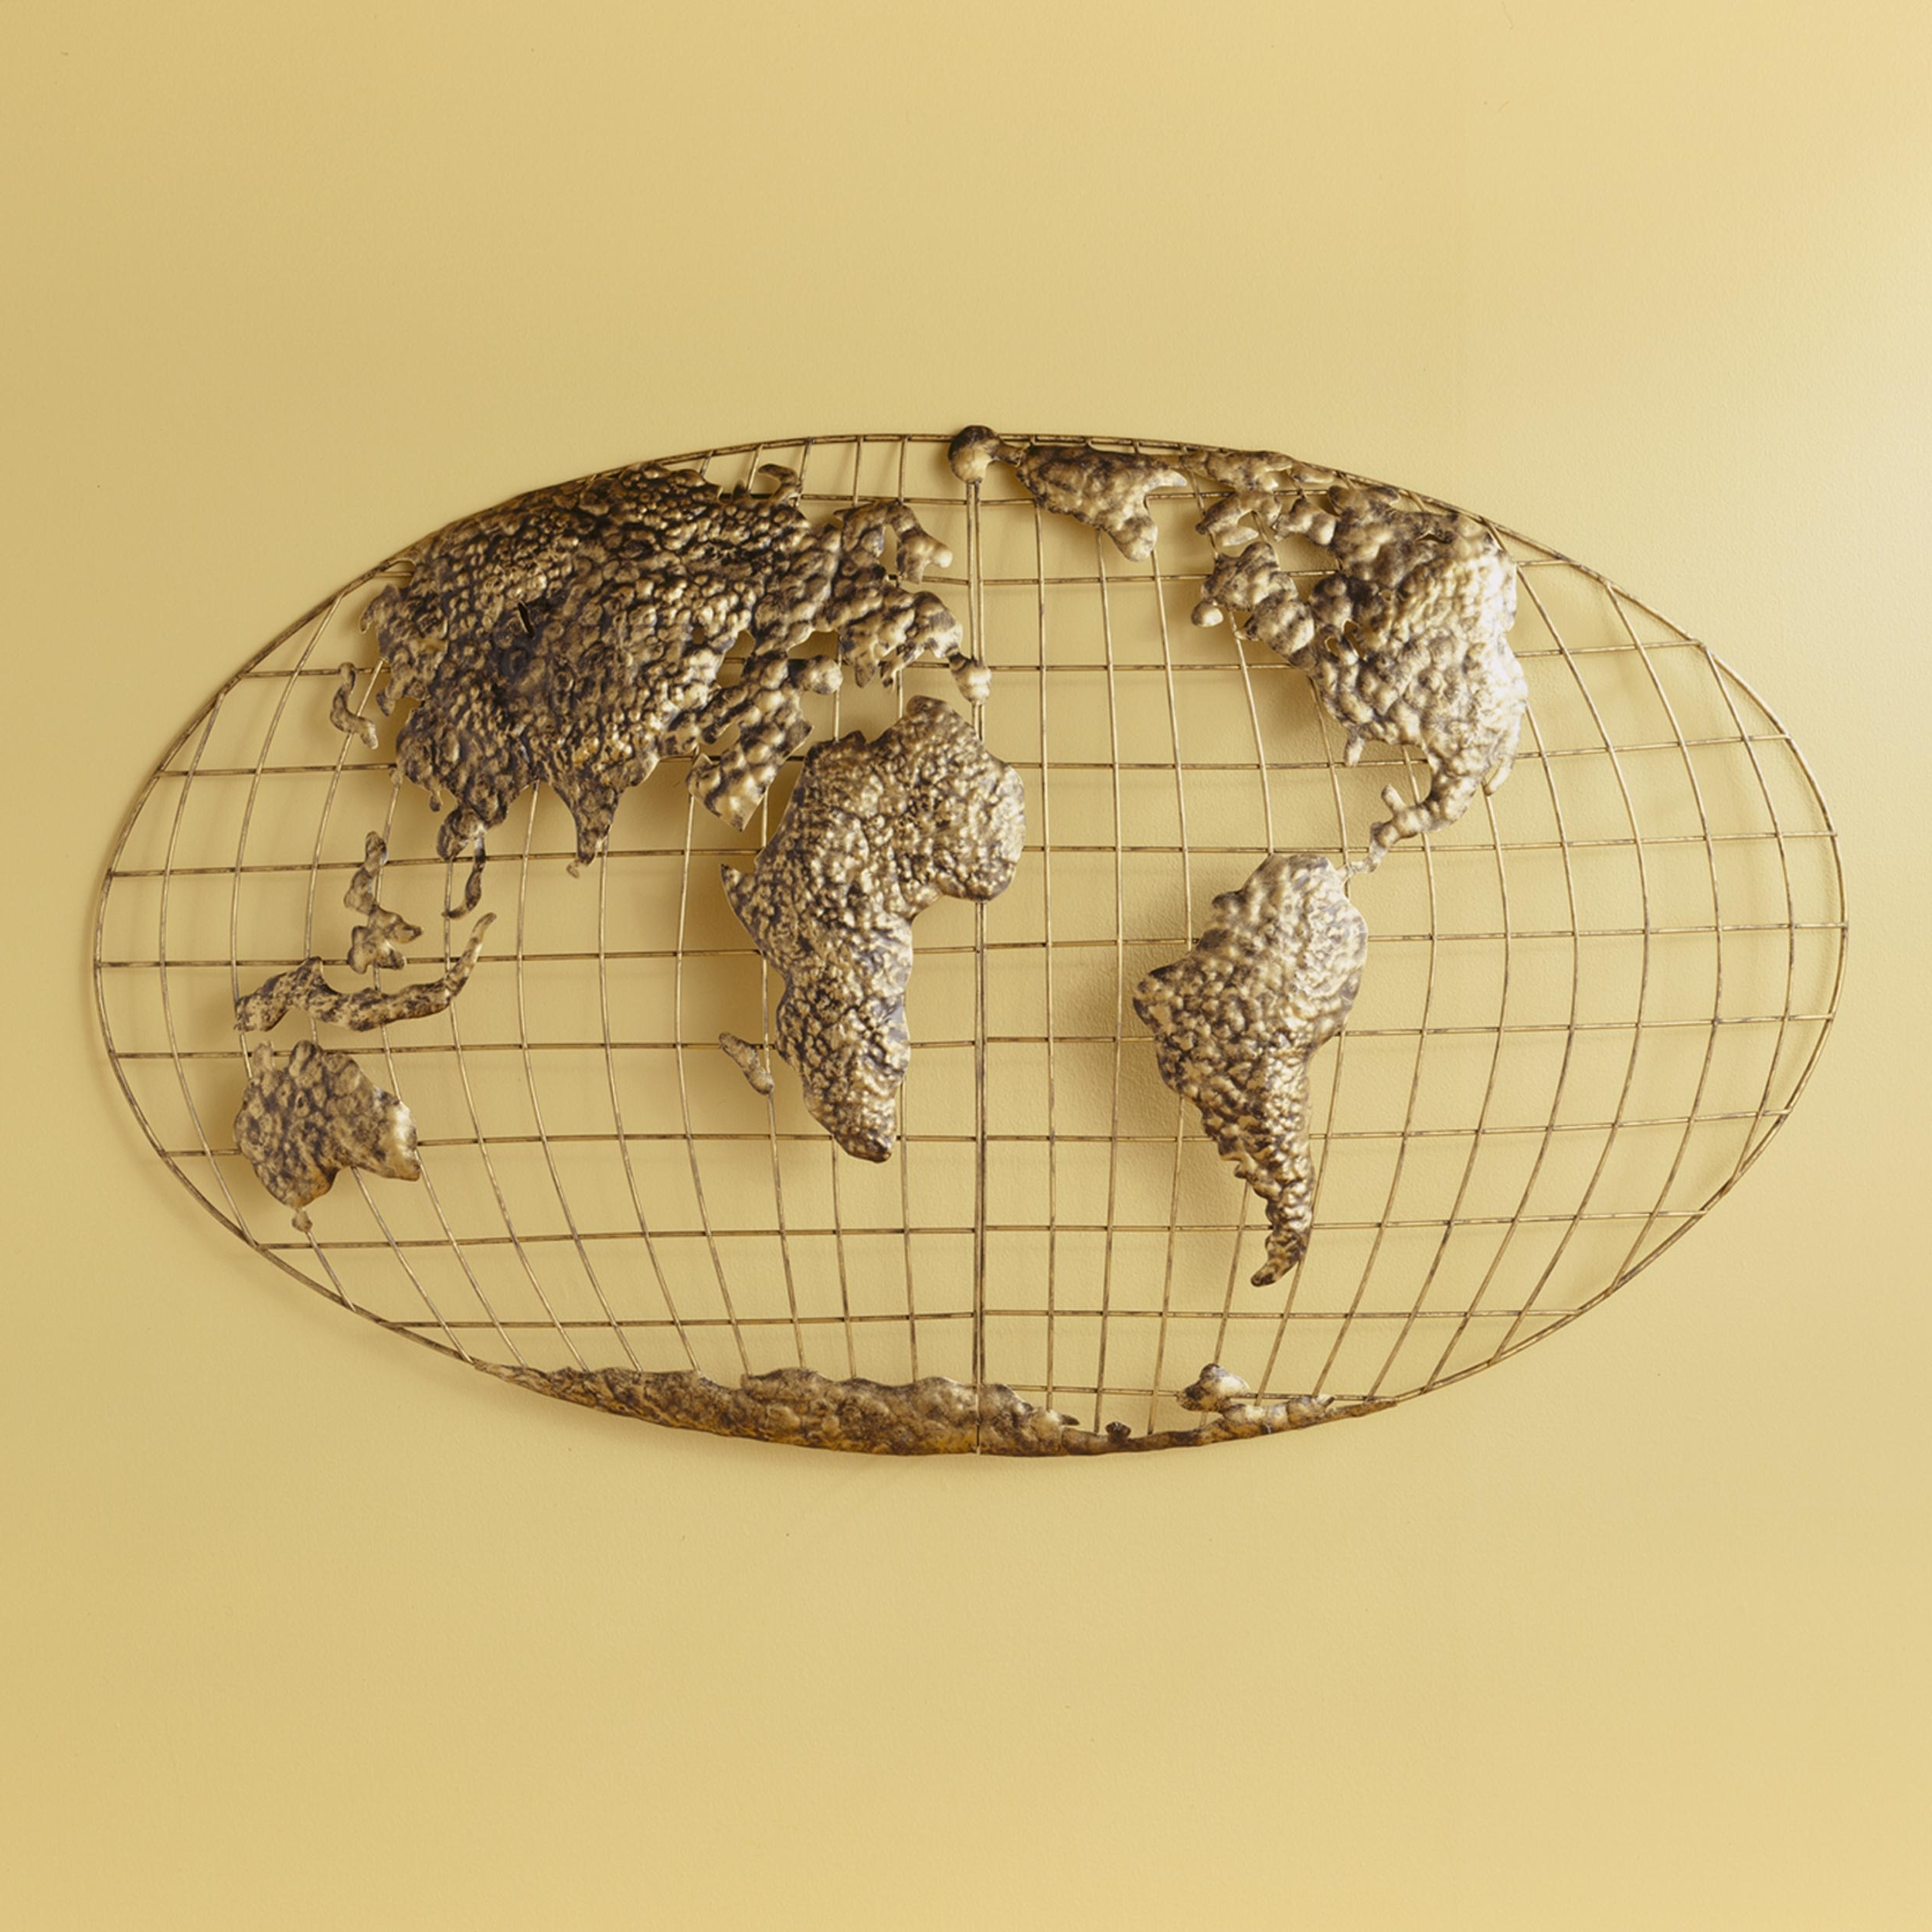 World Map For Wall Art Intended For Most Up To Date Amazon: Sei Southern Enterprises Iron World Map Wall Art: Home (View 11 of 15)